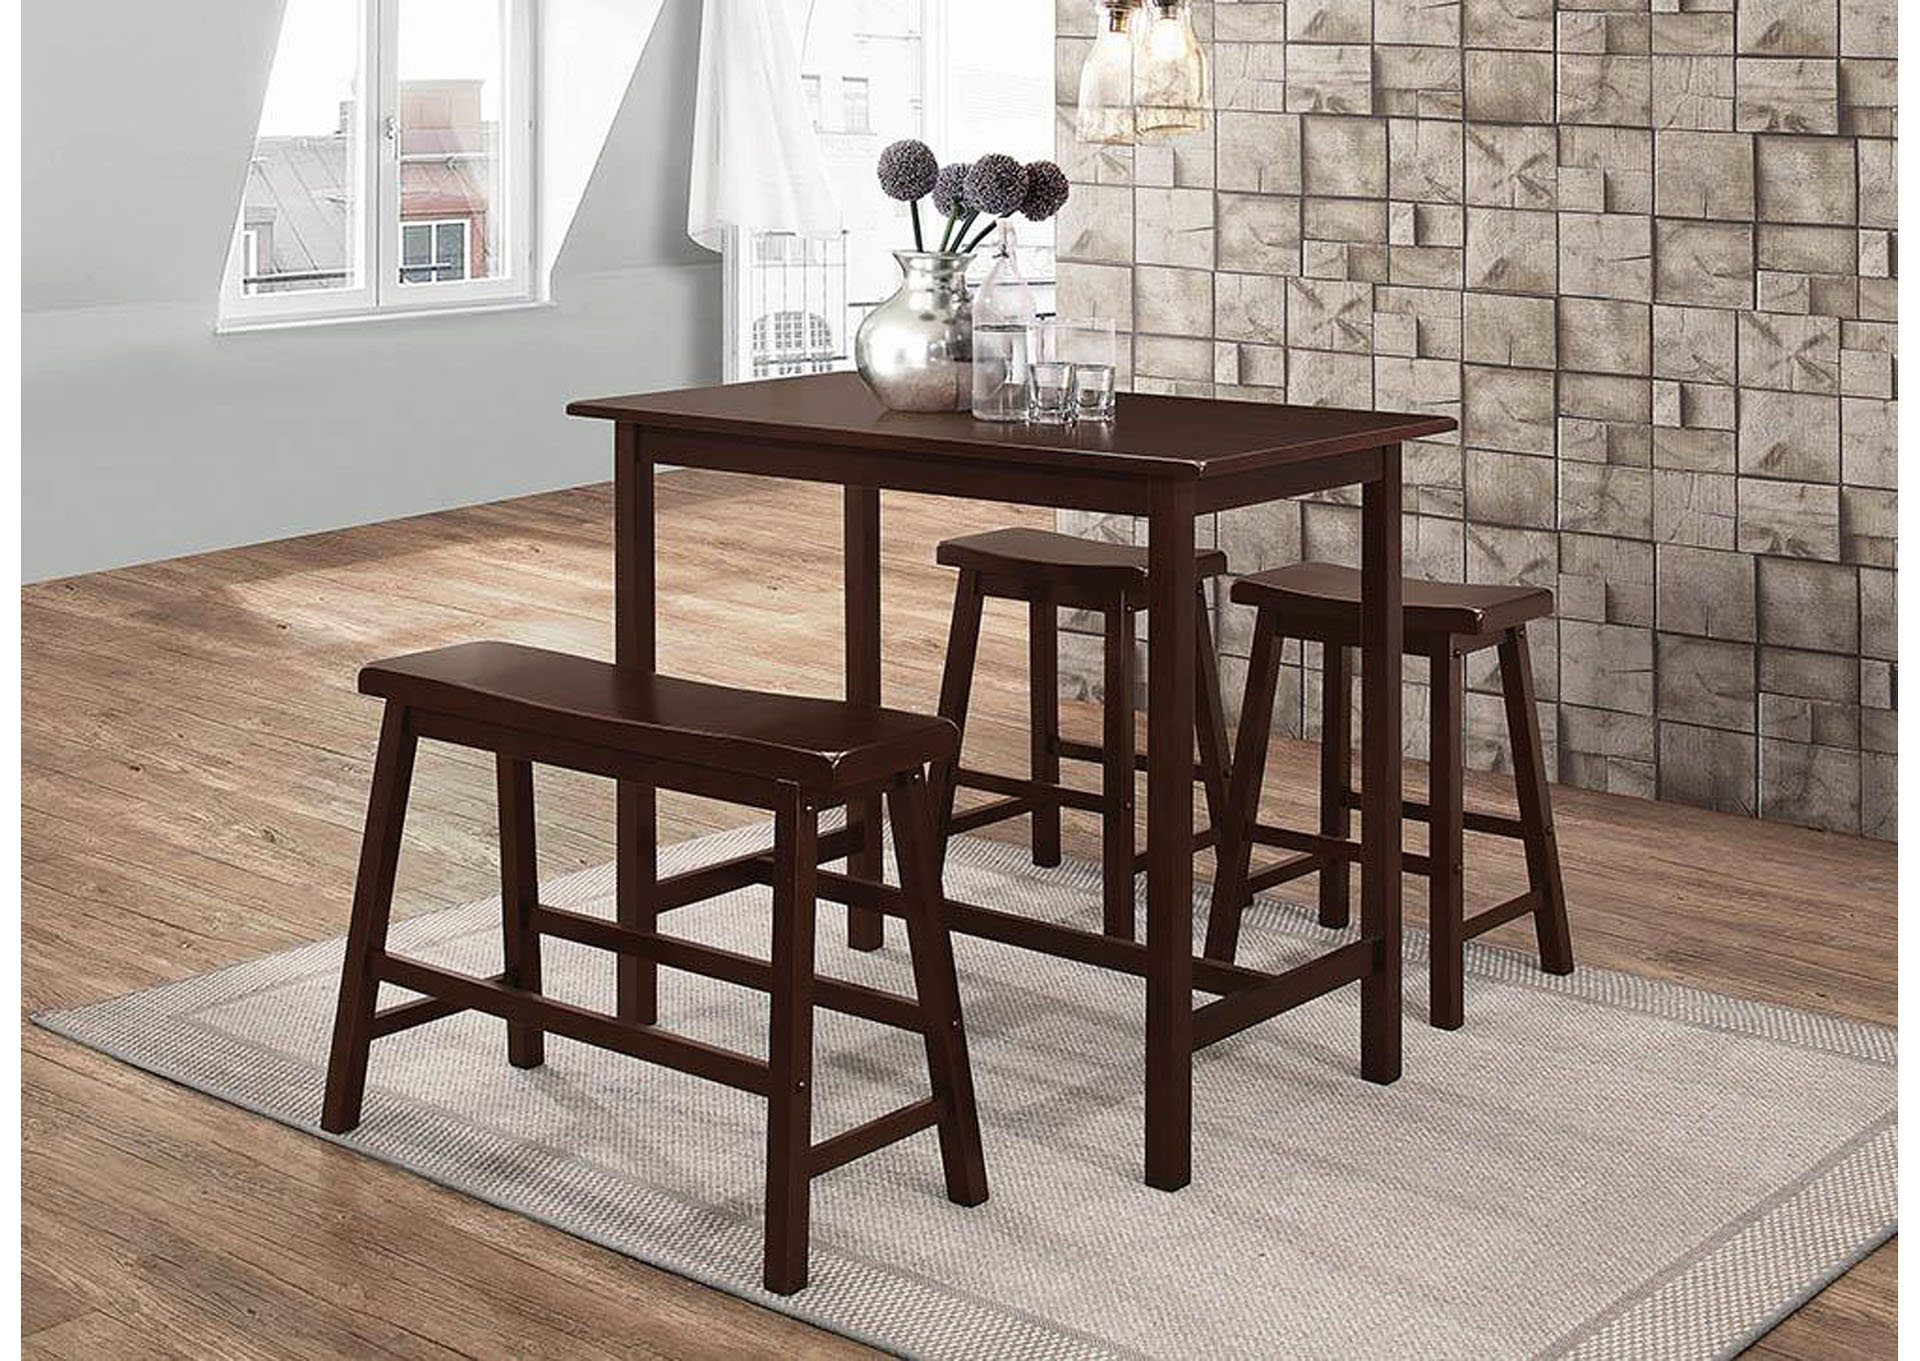 Cappuccino 4 Piece Counter Height Dining Set,Coaster Furniture